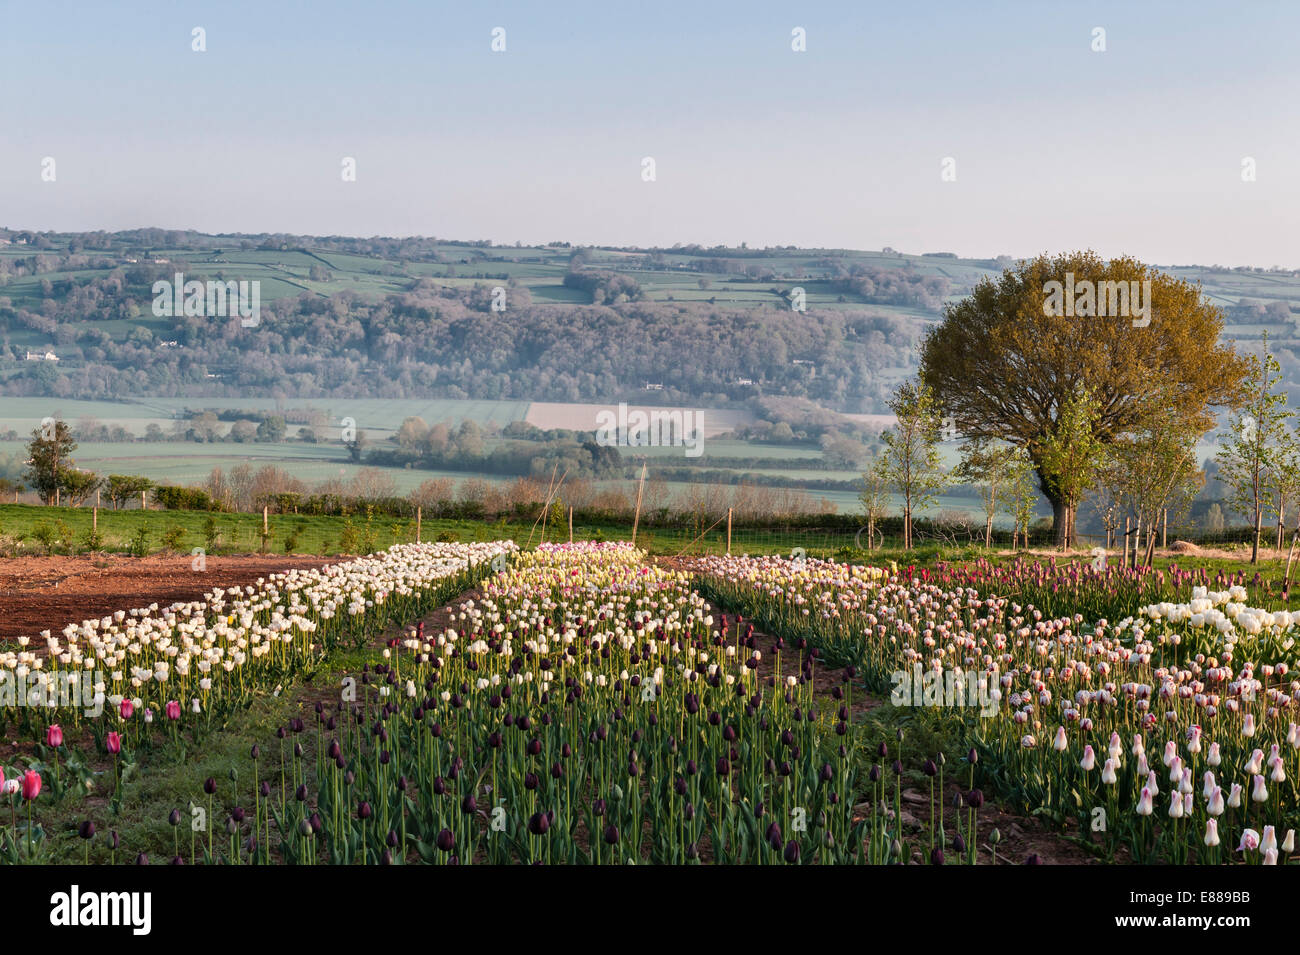 A field of tulips grown for sale as cut flowers by mail order, Herefordshire, UK - Stock Image